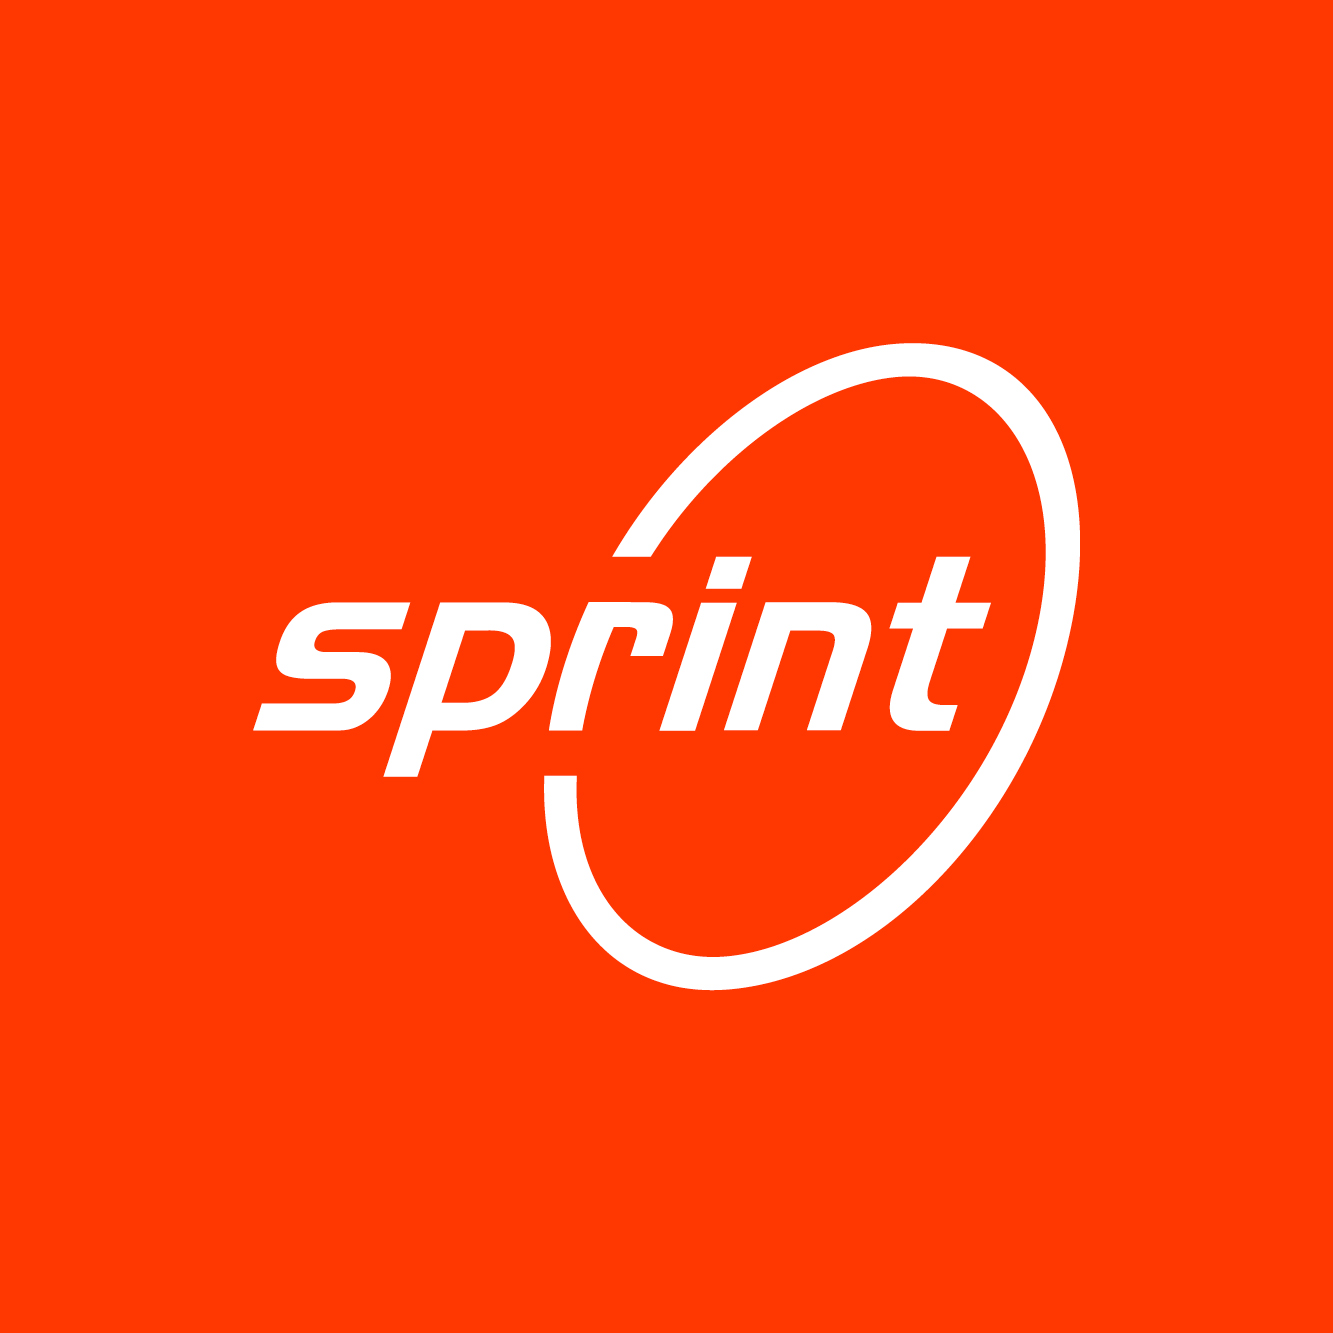 Sprint Logo Design